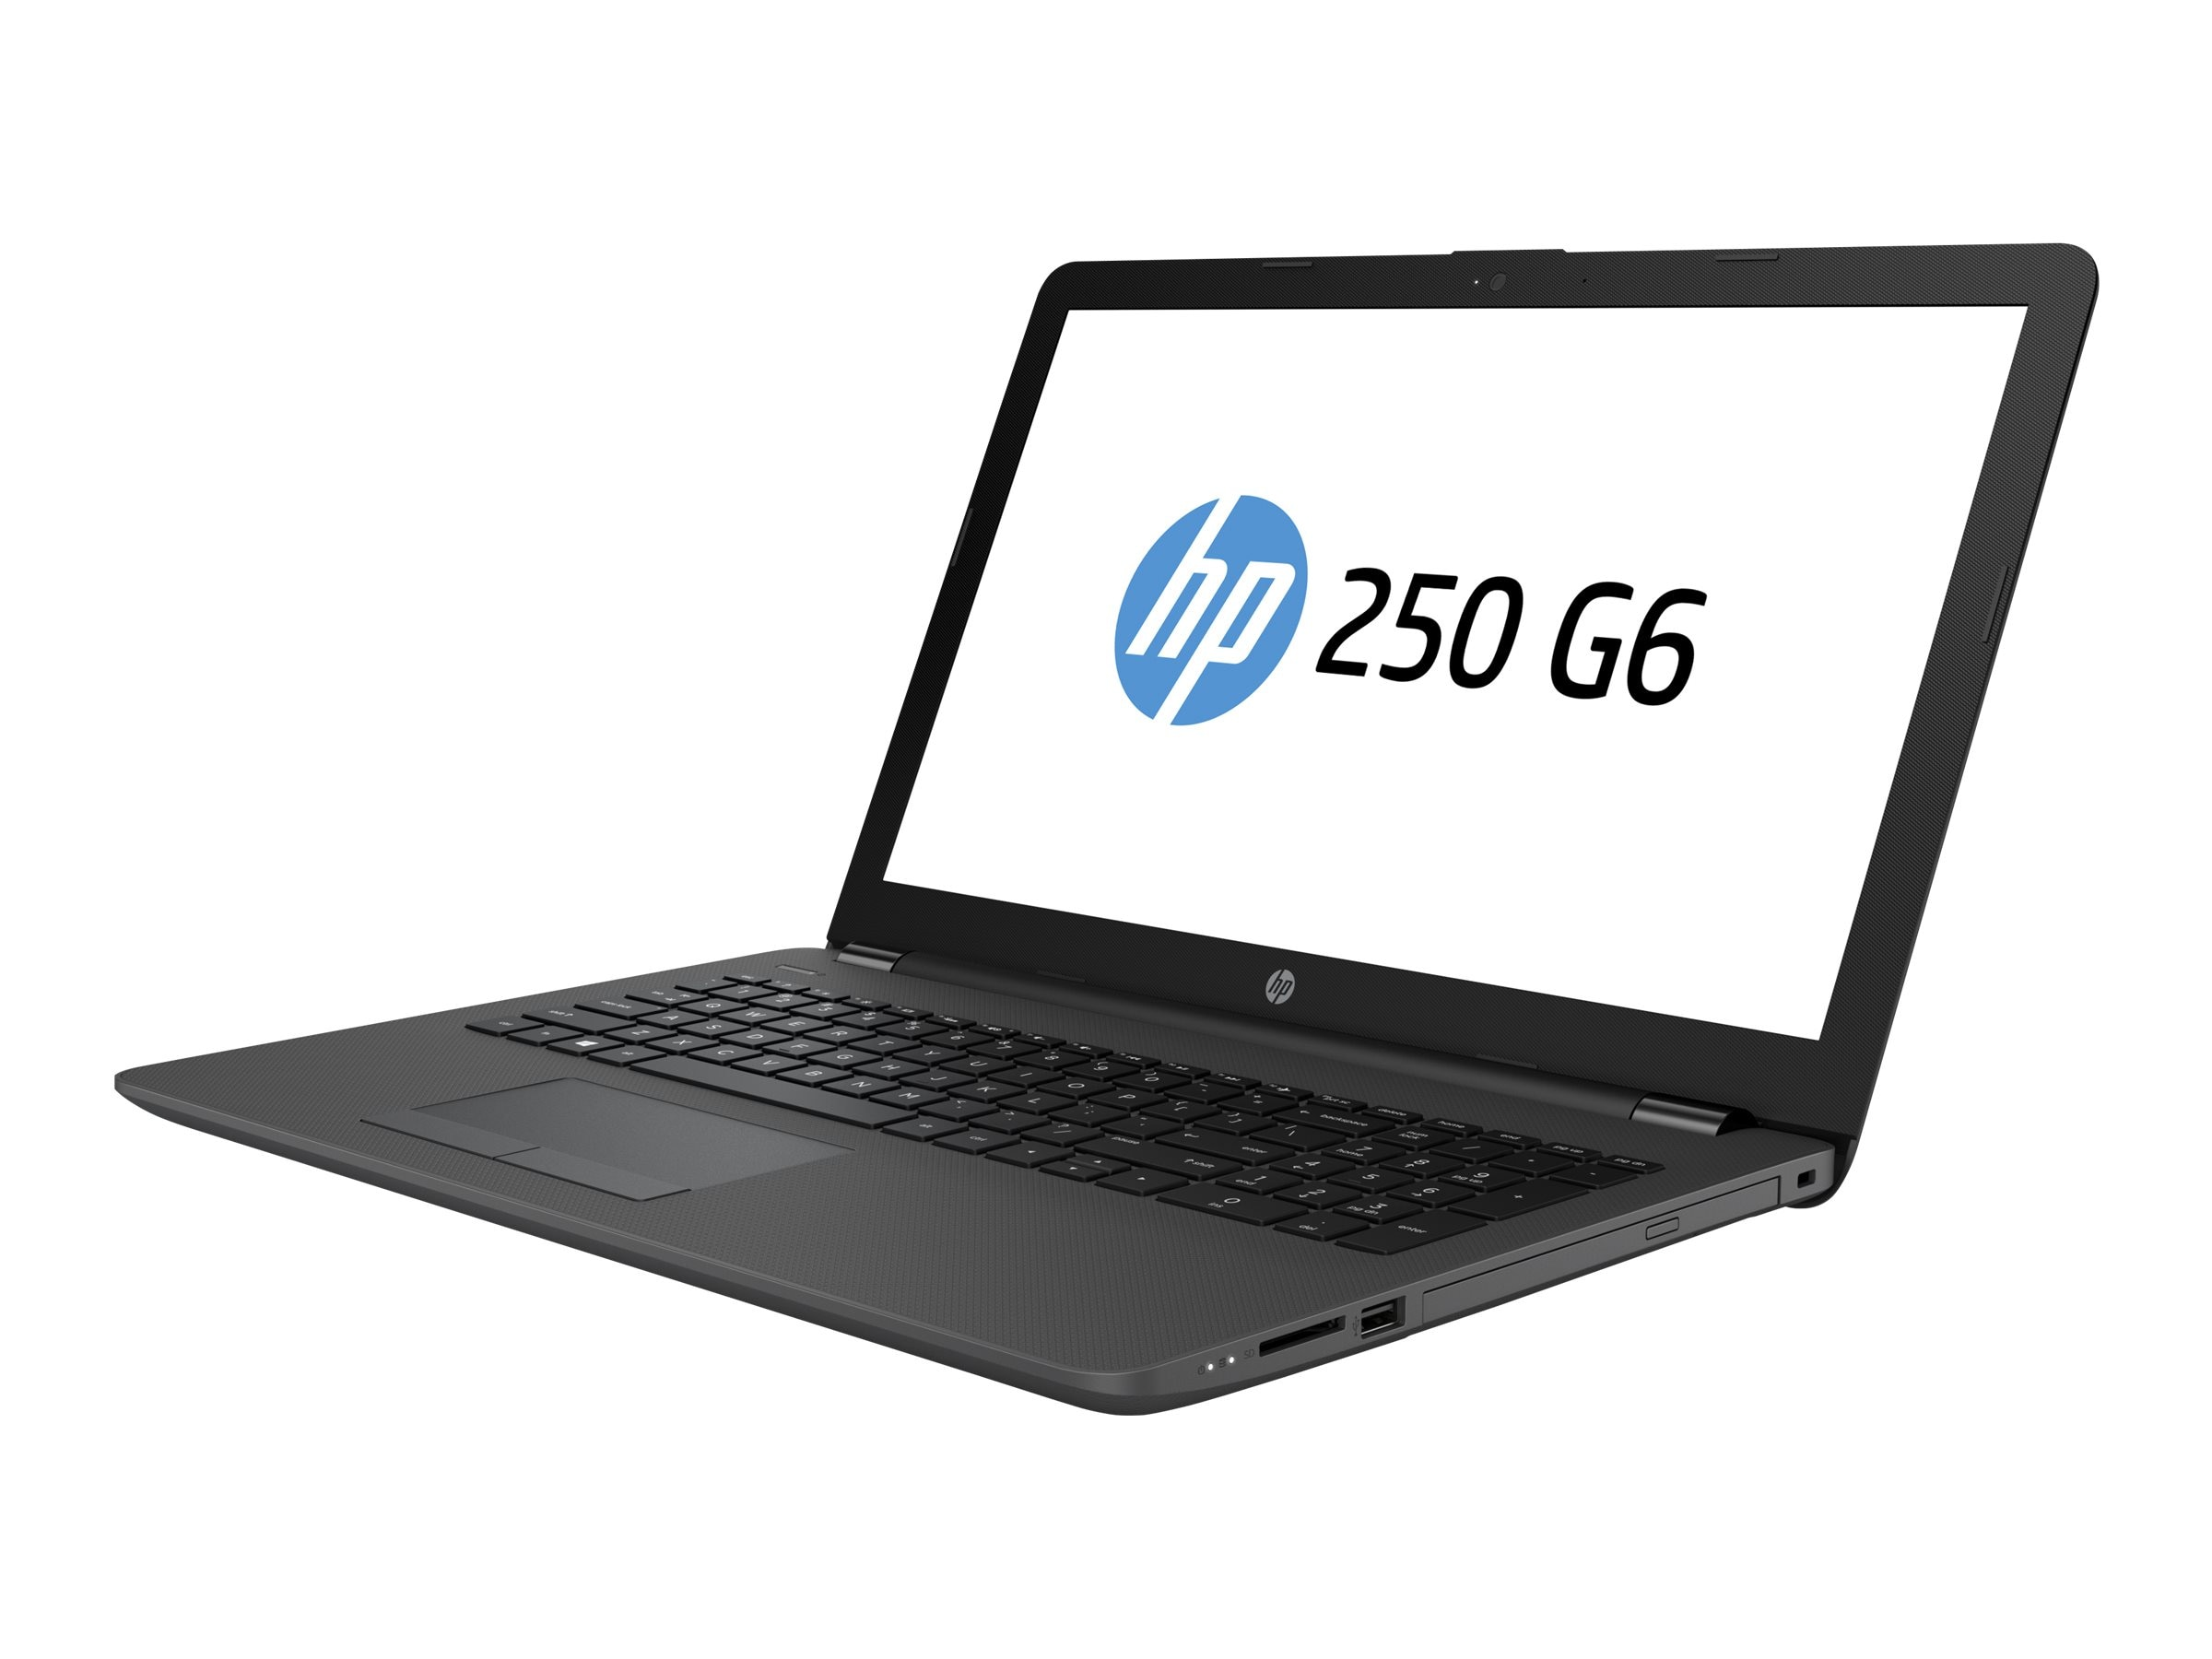 HP 255 G6 1.5GHz E2 series 15.6in display